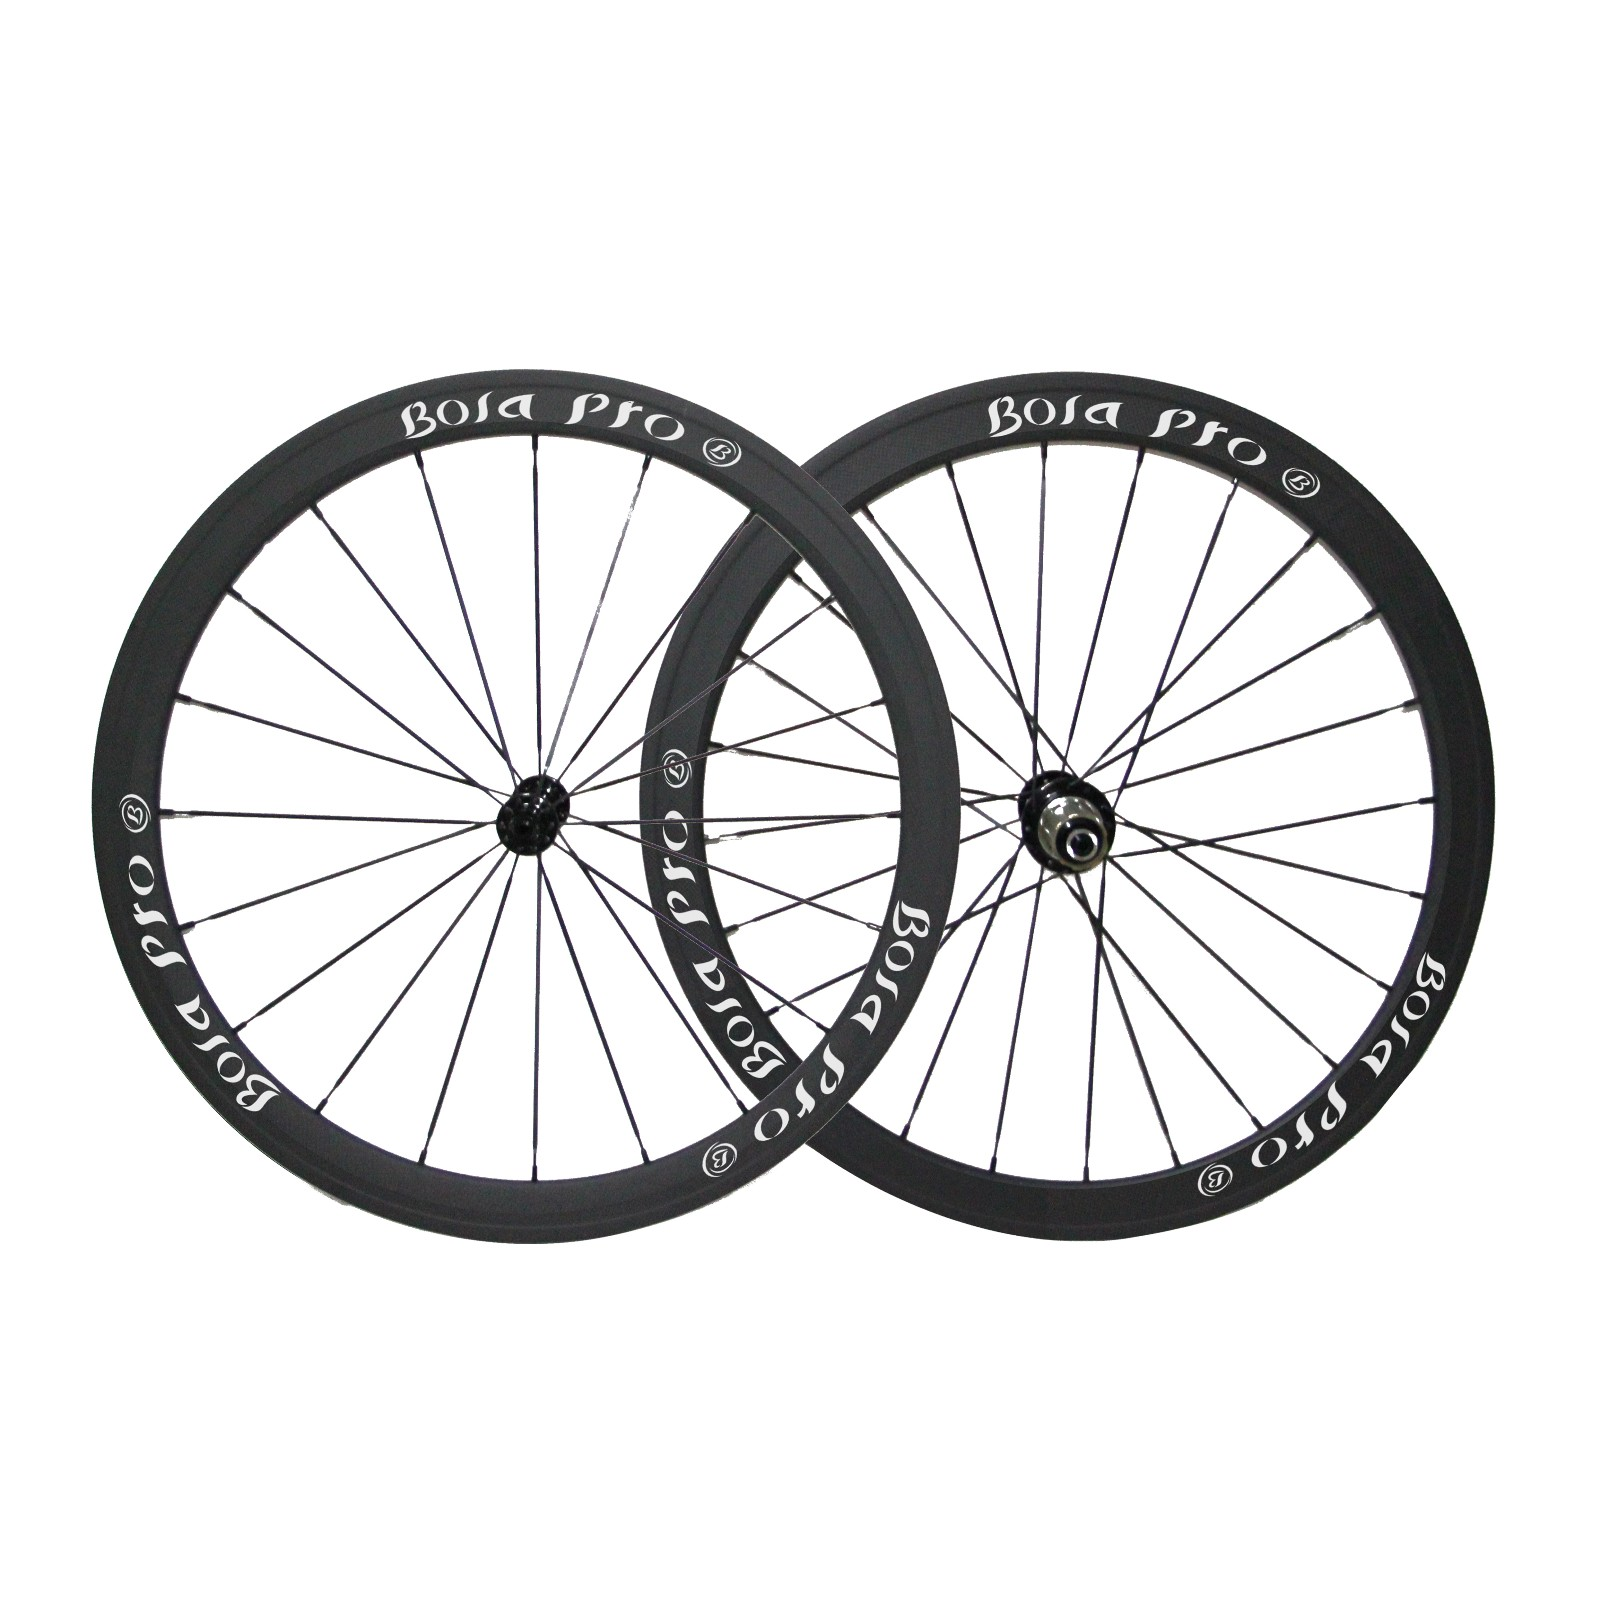 700C 38mm carbon wheelset with Powerway R13